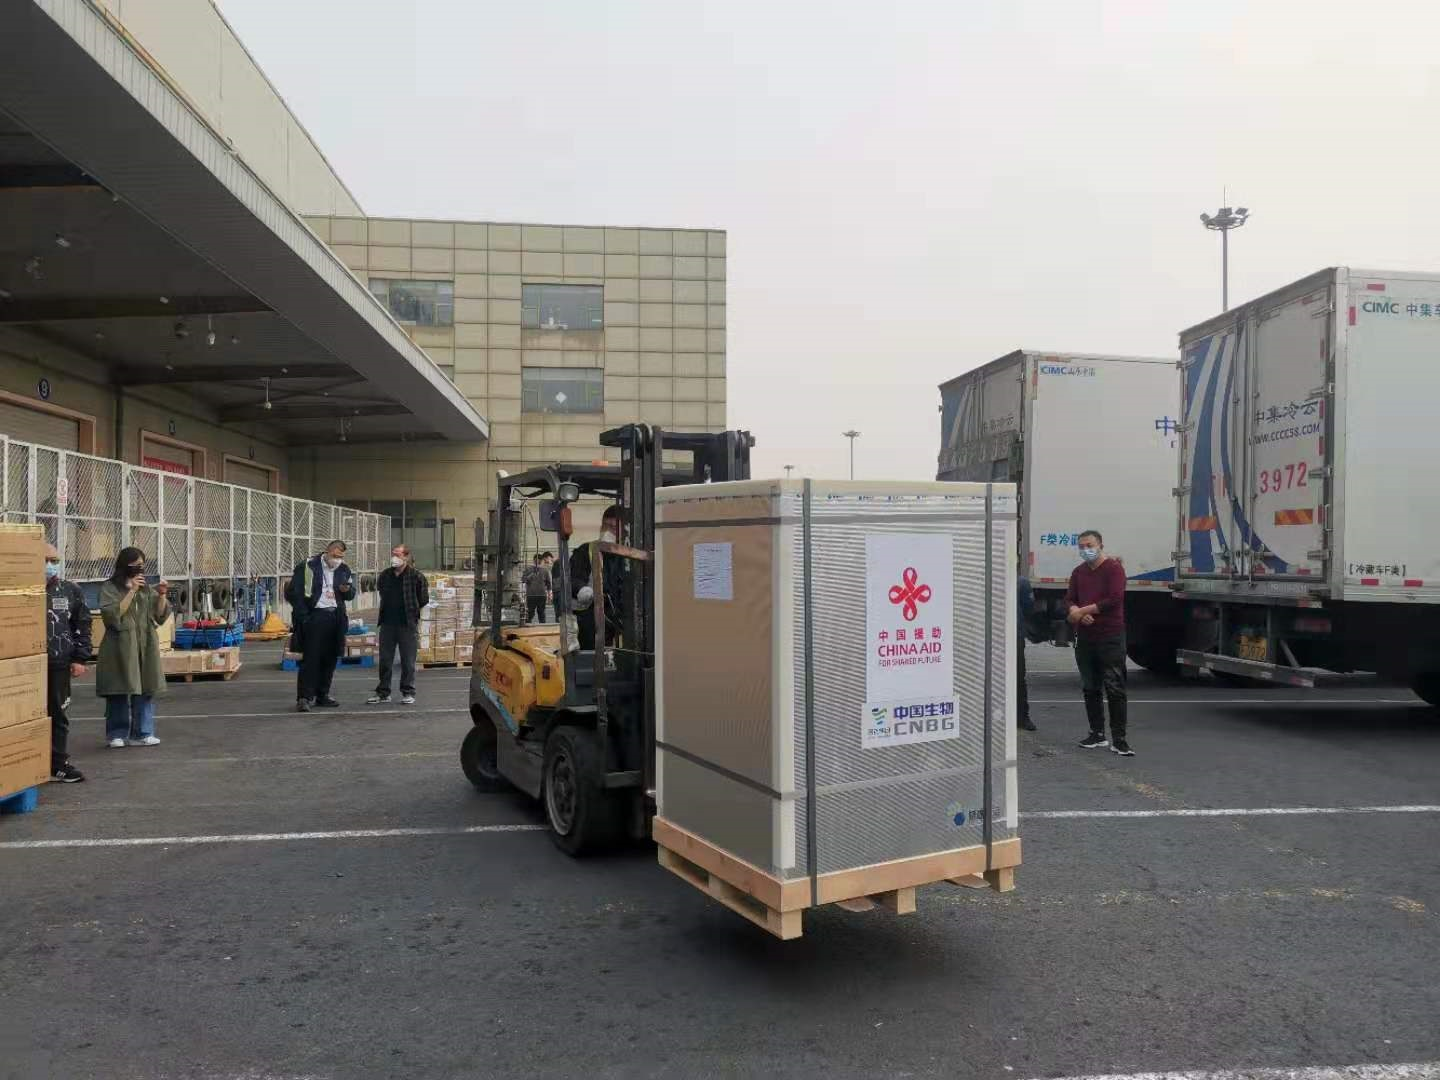 800,000 Doses China Aid COVID-19 Vaccines Arriving Monday